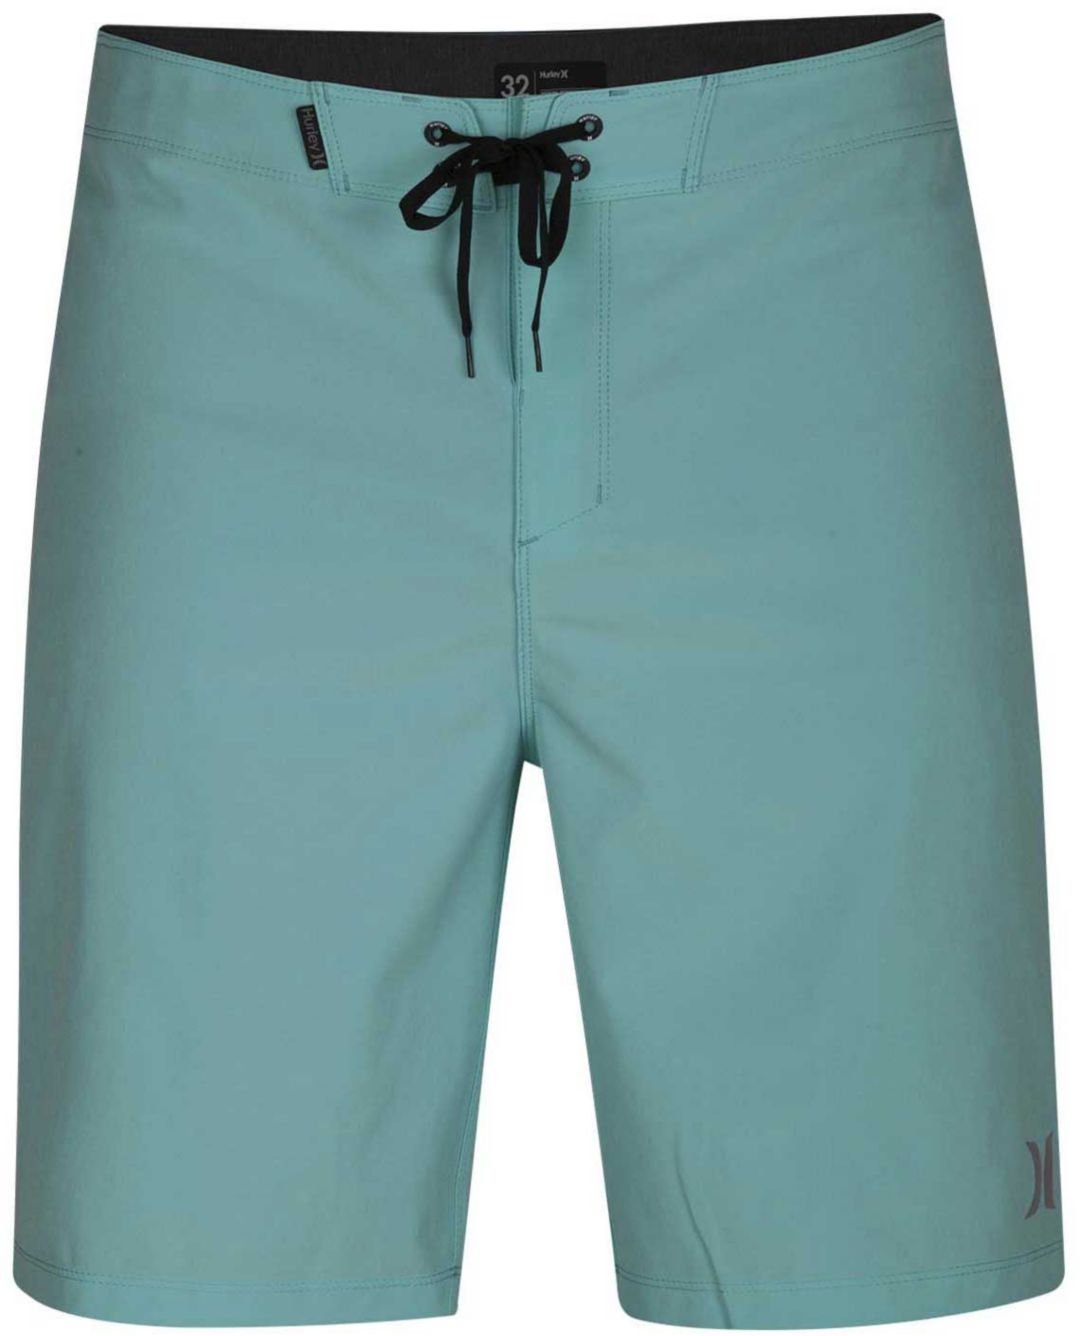 b51b5267a0 Hurley Men's One & Only Board Shorts